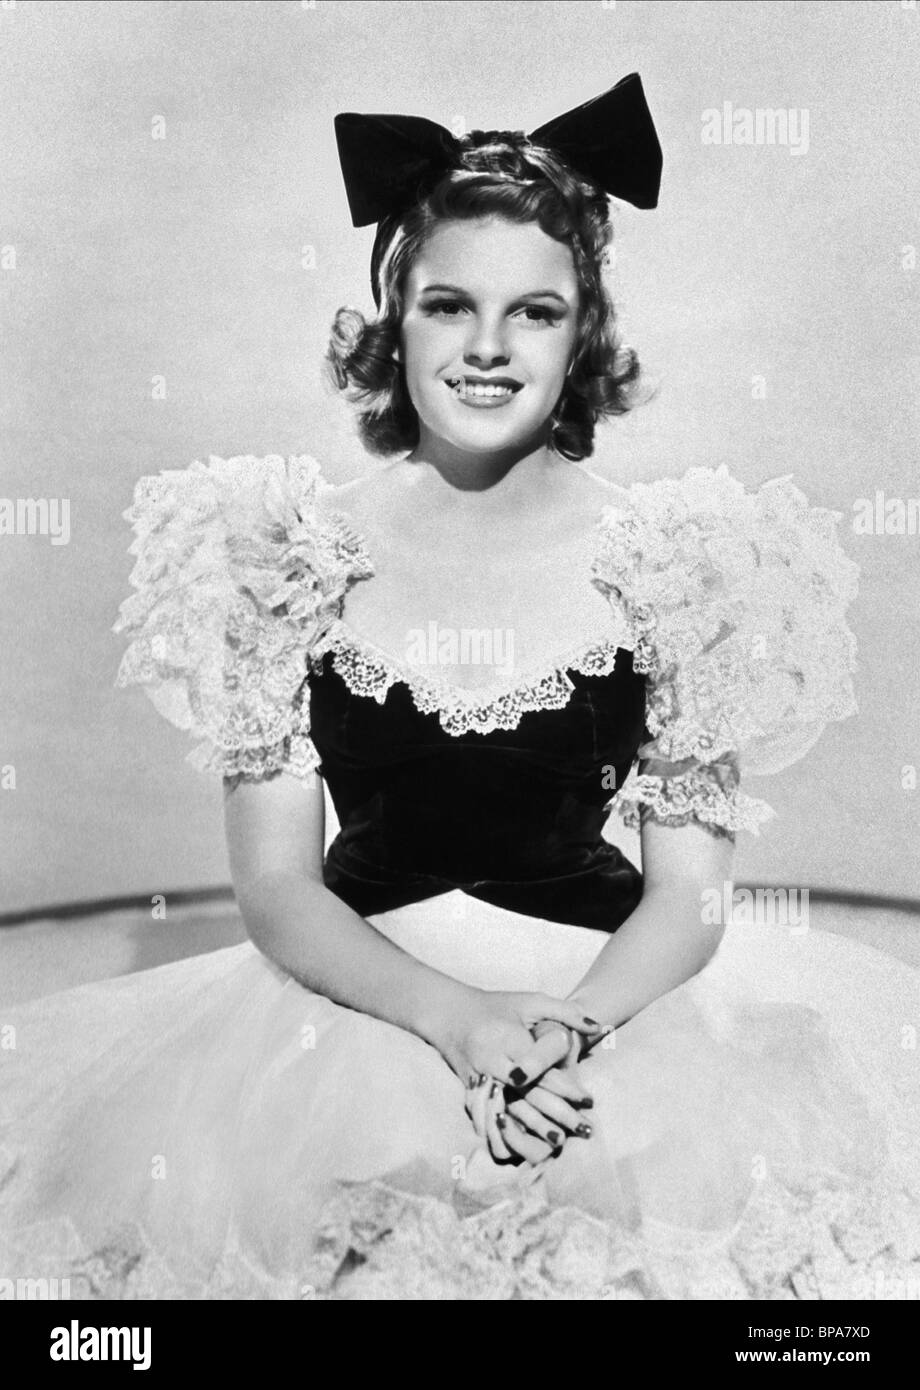 Judy Garland Strike Up The Band 1940 Stock Photo Alamy